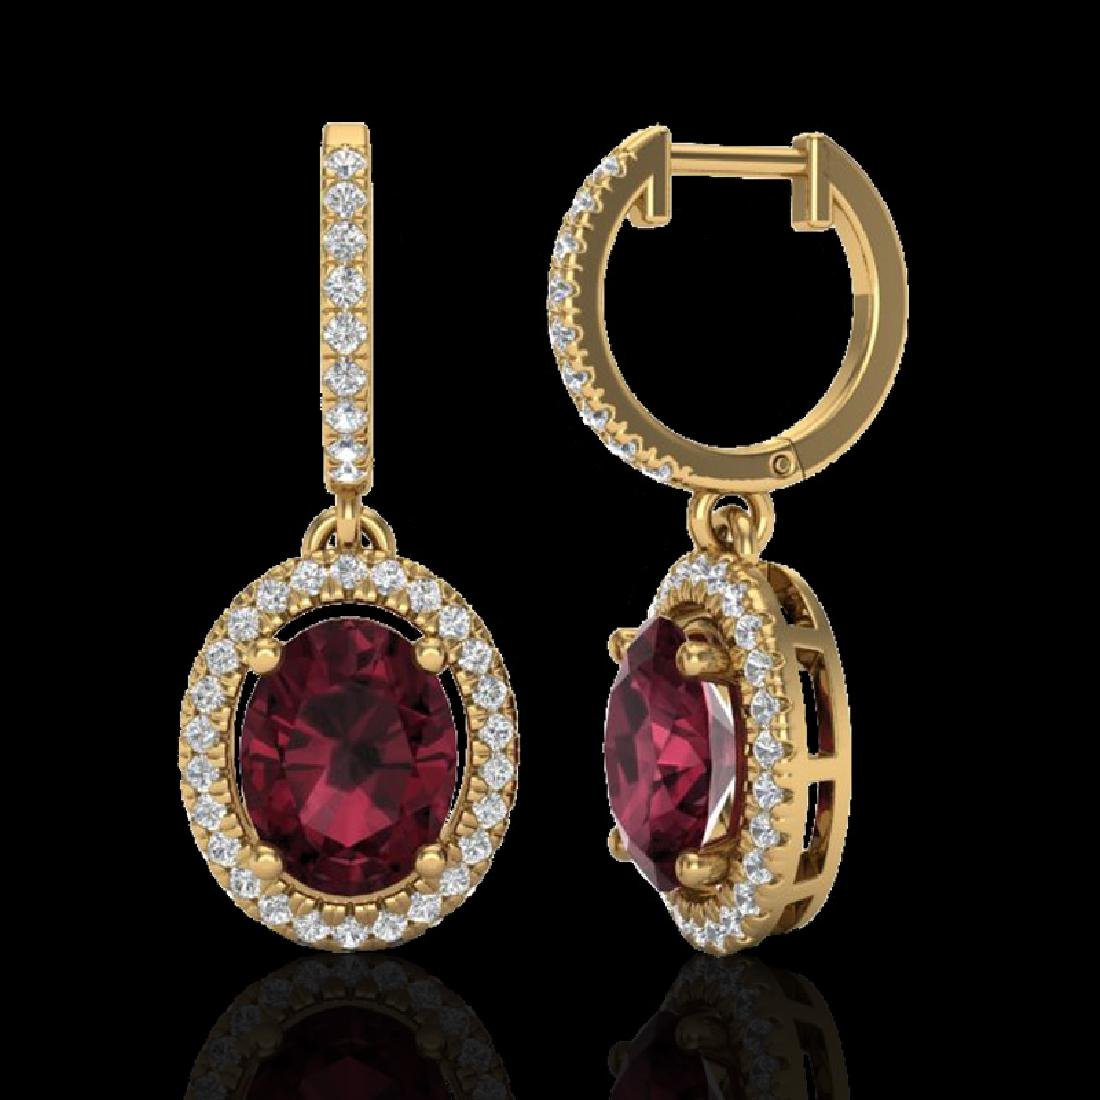 3.75 CTW Garnet & Micro Pave VS/SI Diamond Earrings - 2